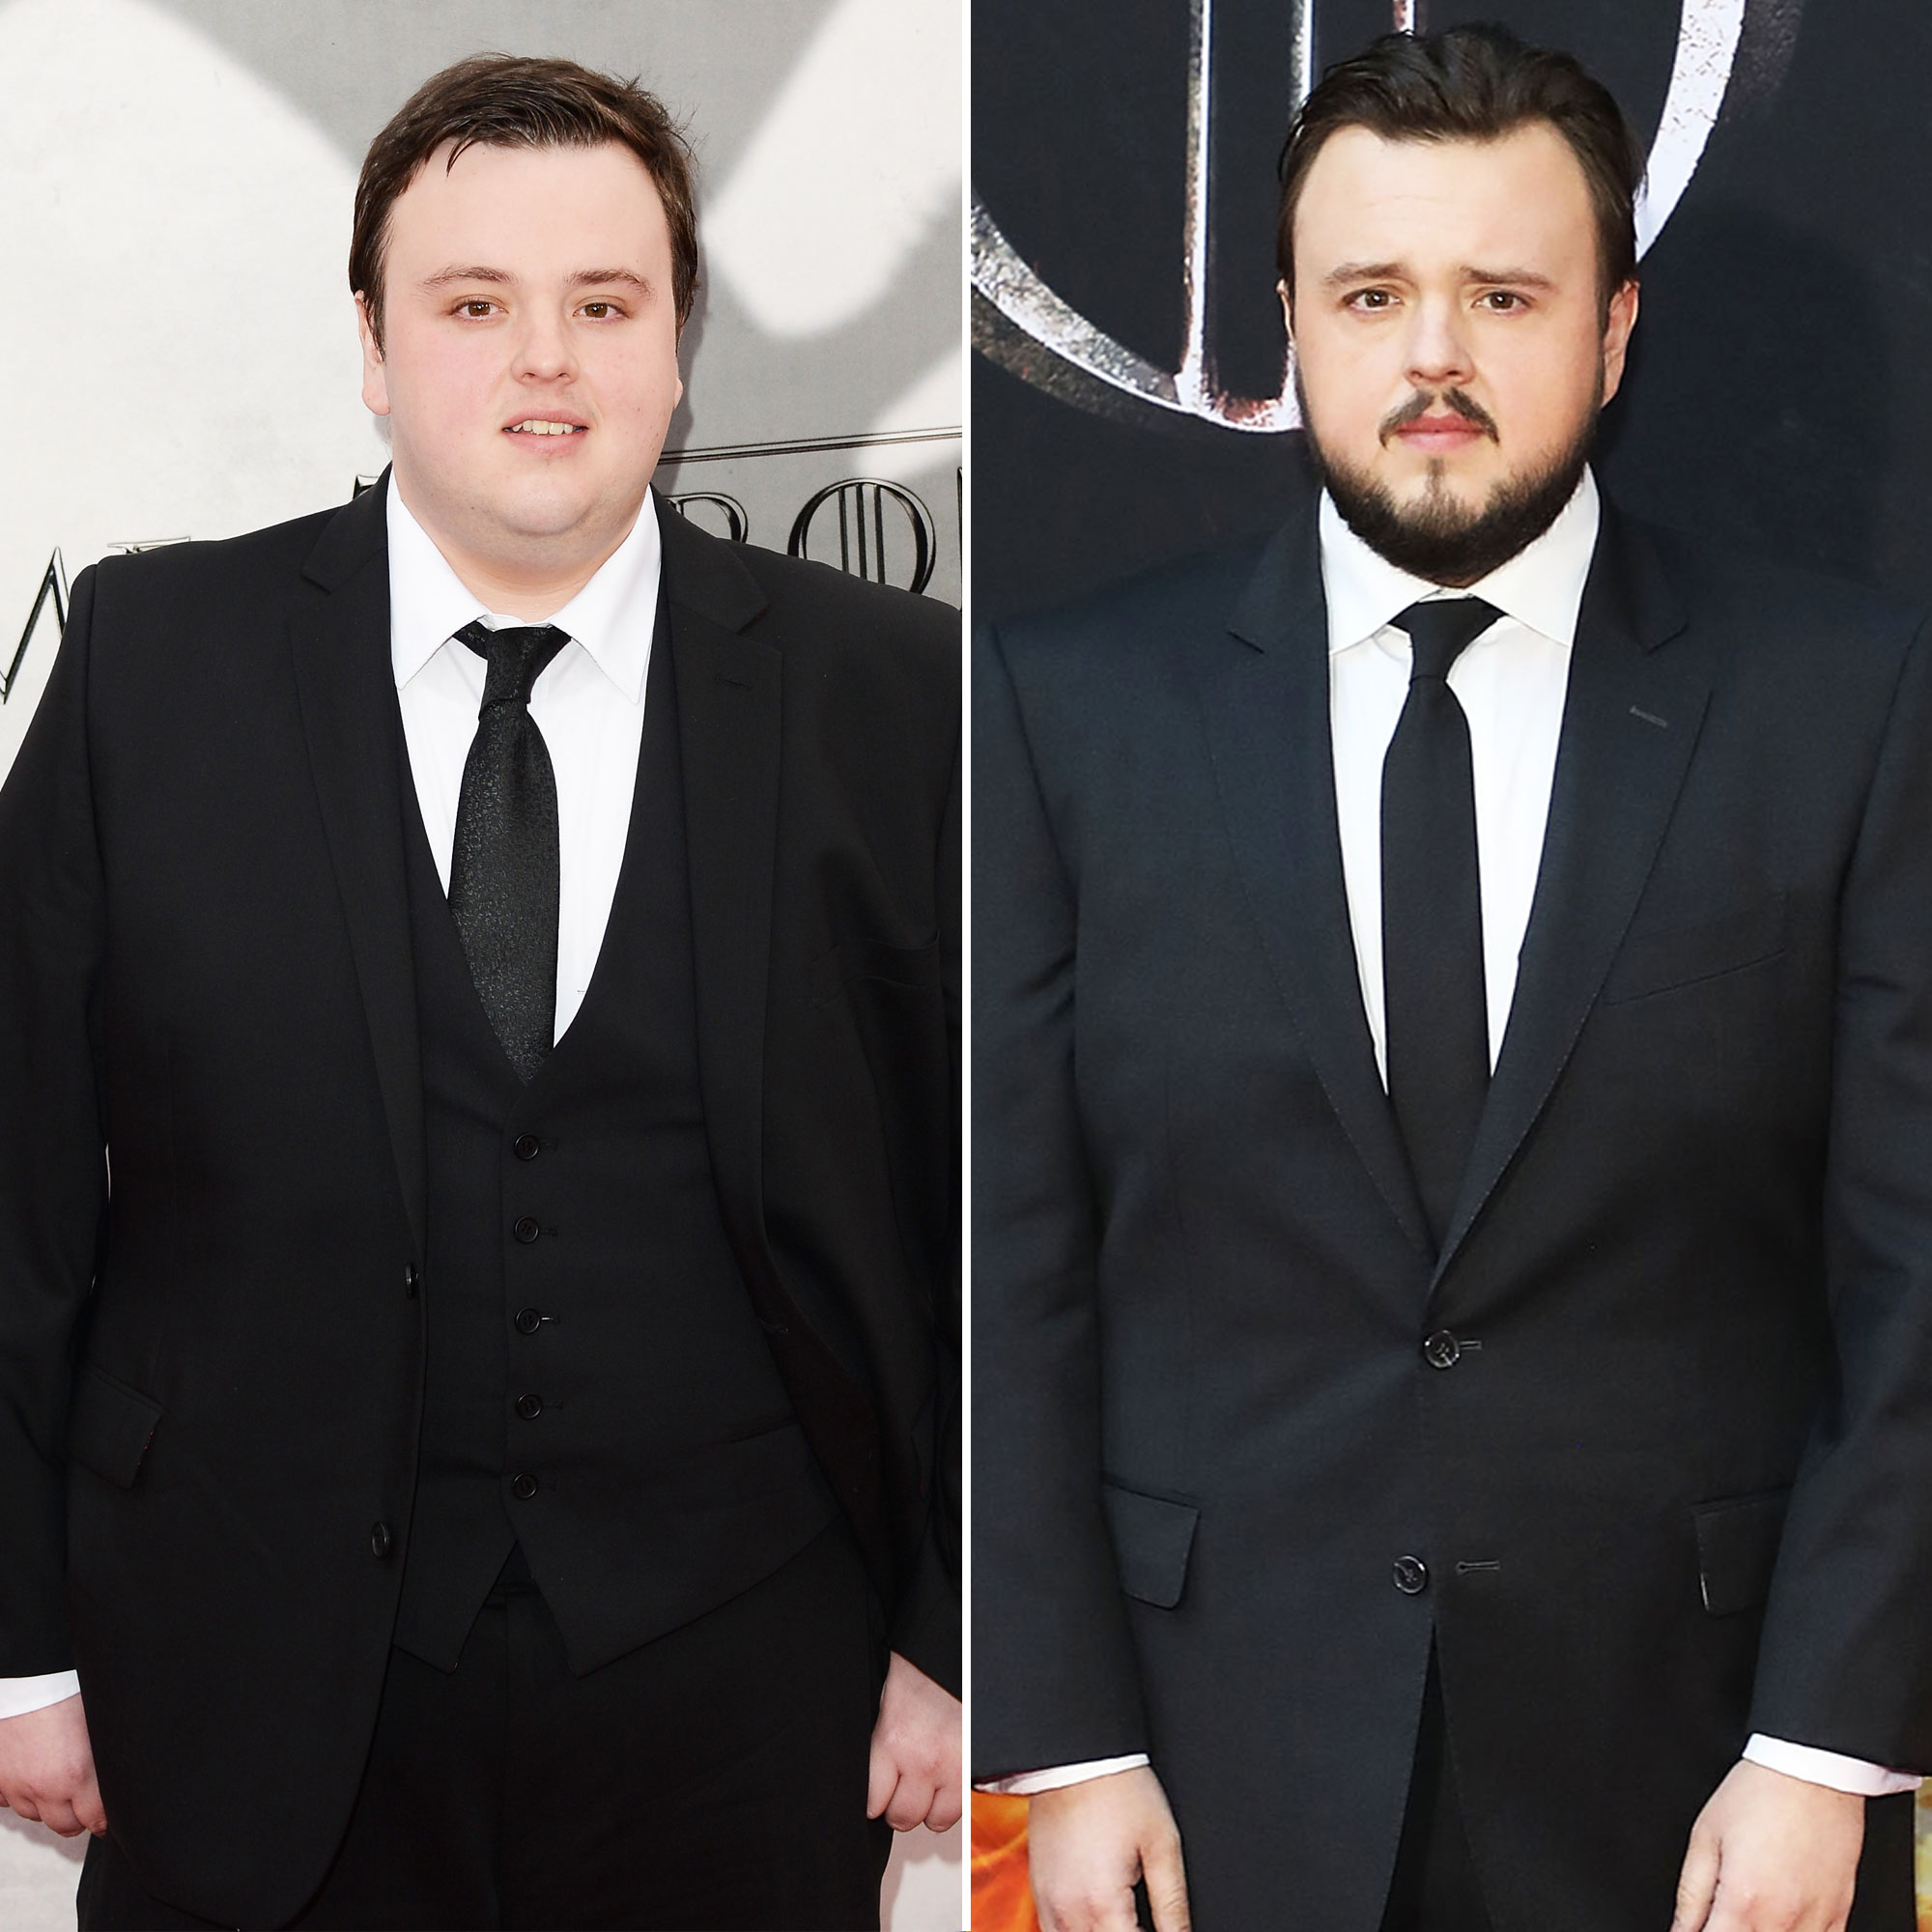 John Bradley 'Game of Thrones' Stars: From the First 'GoT' Red Carpet Premiere to the Last - Jon Snow's BFF has been a beloved by fans since the series' fourth episode. While his style has basically stayed the same, his face has certainly matured.